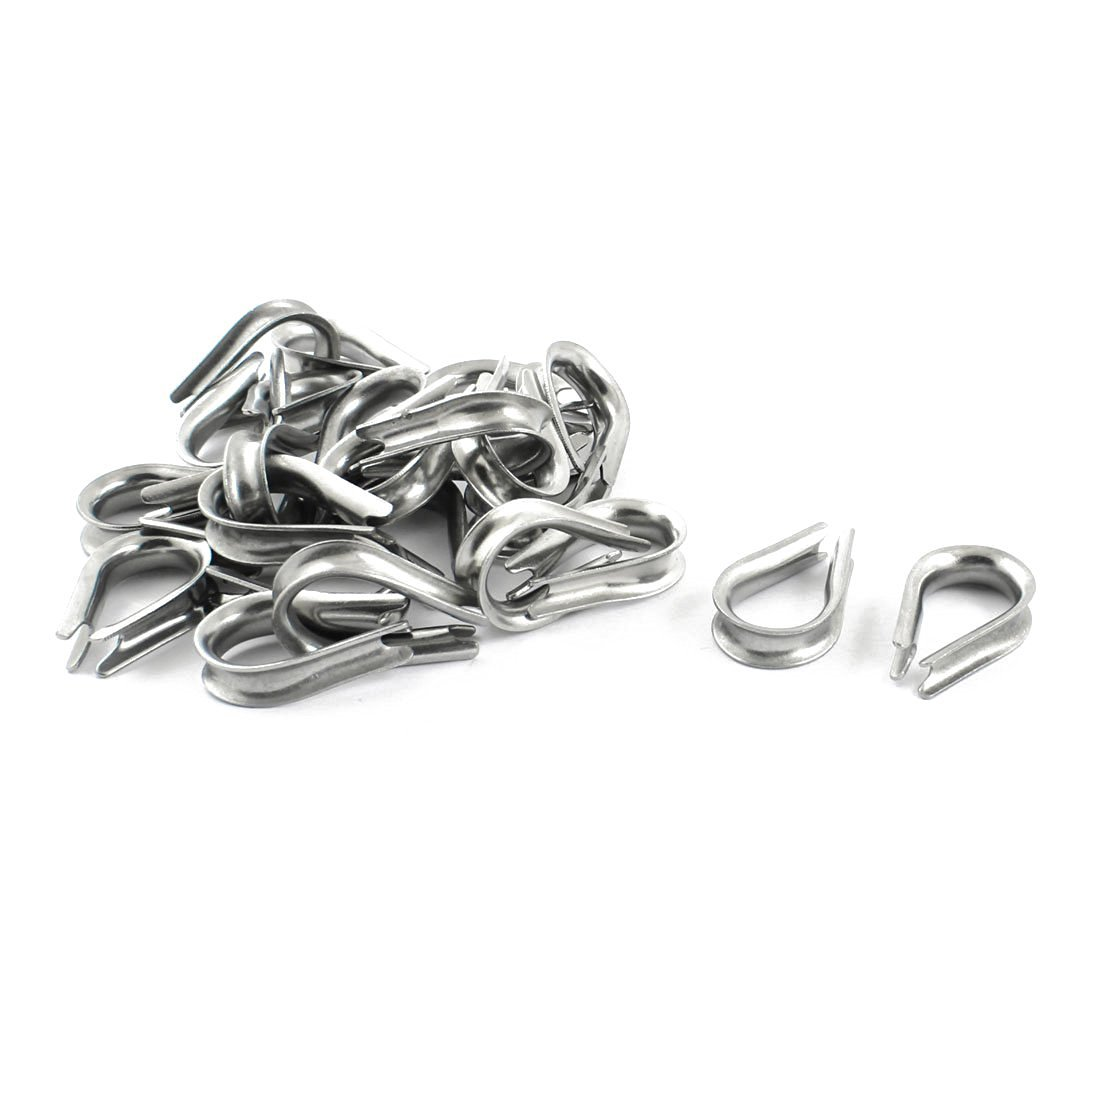 Buy Cable Thimbles - SODIAL(R) Stainless Steel 6mm Wire Rope Cable ...